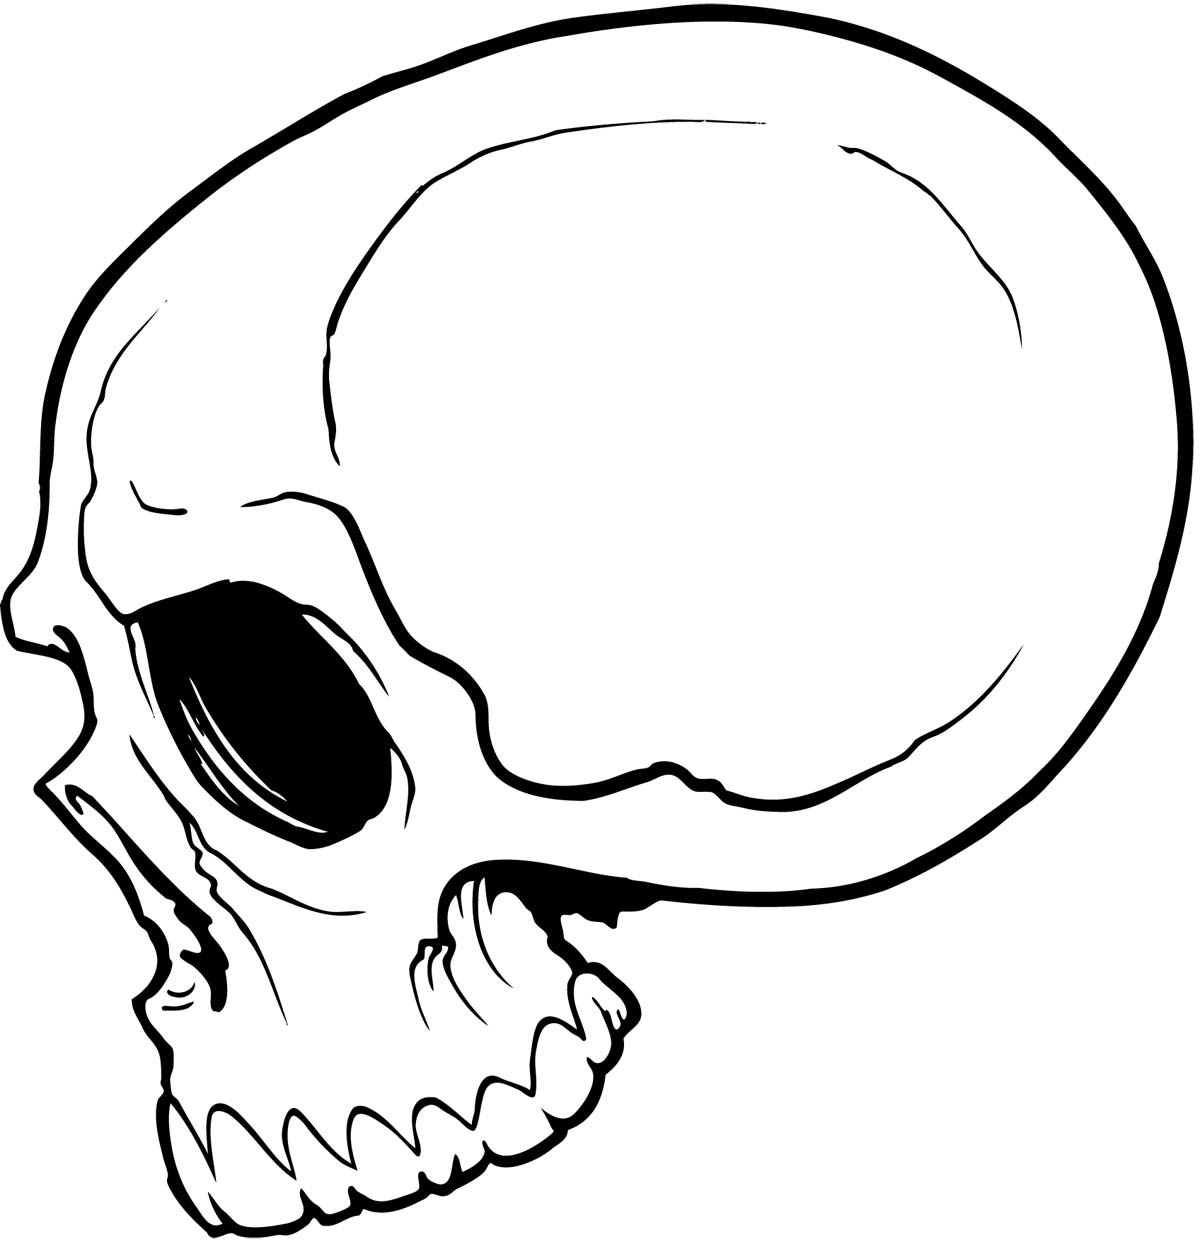 WP images: Skull drawings, post 5 |Skull Outline Drawings